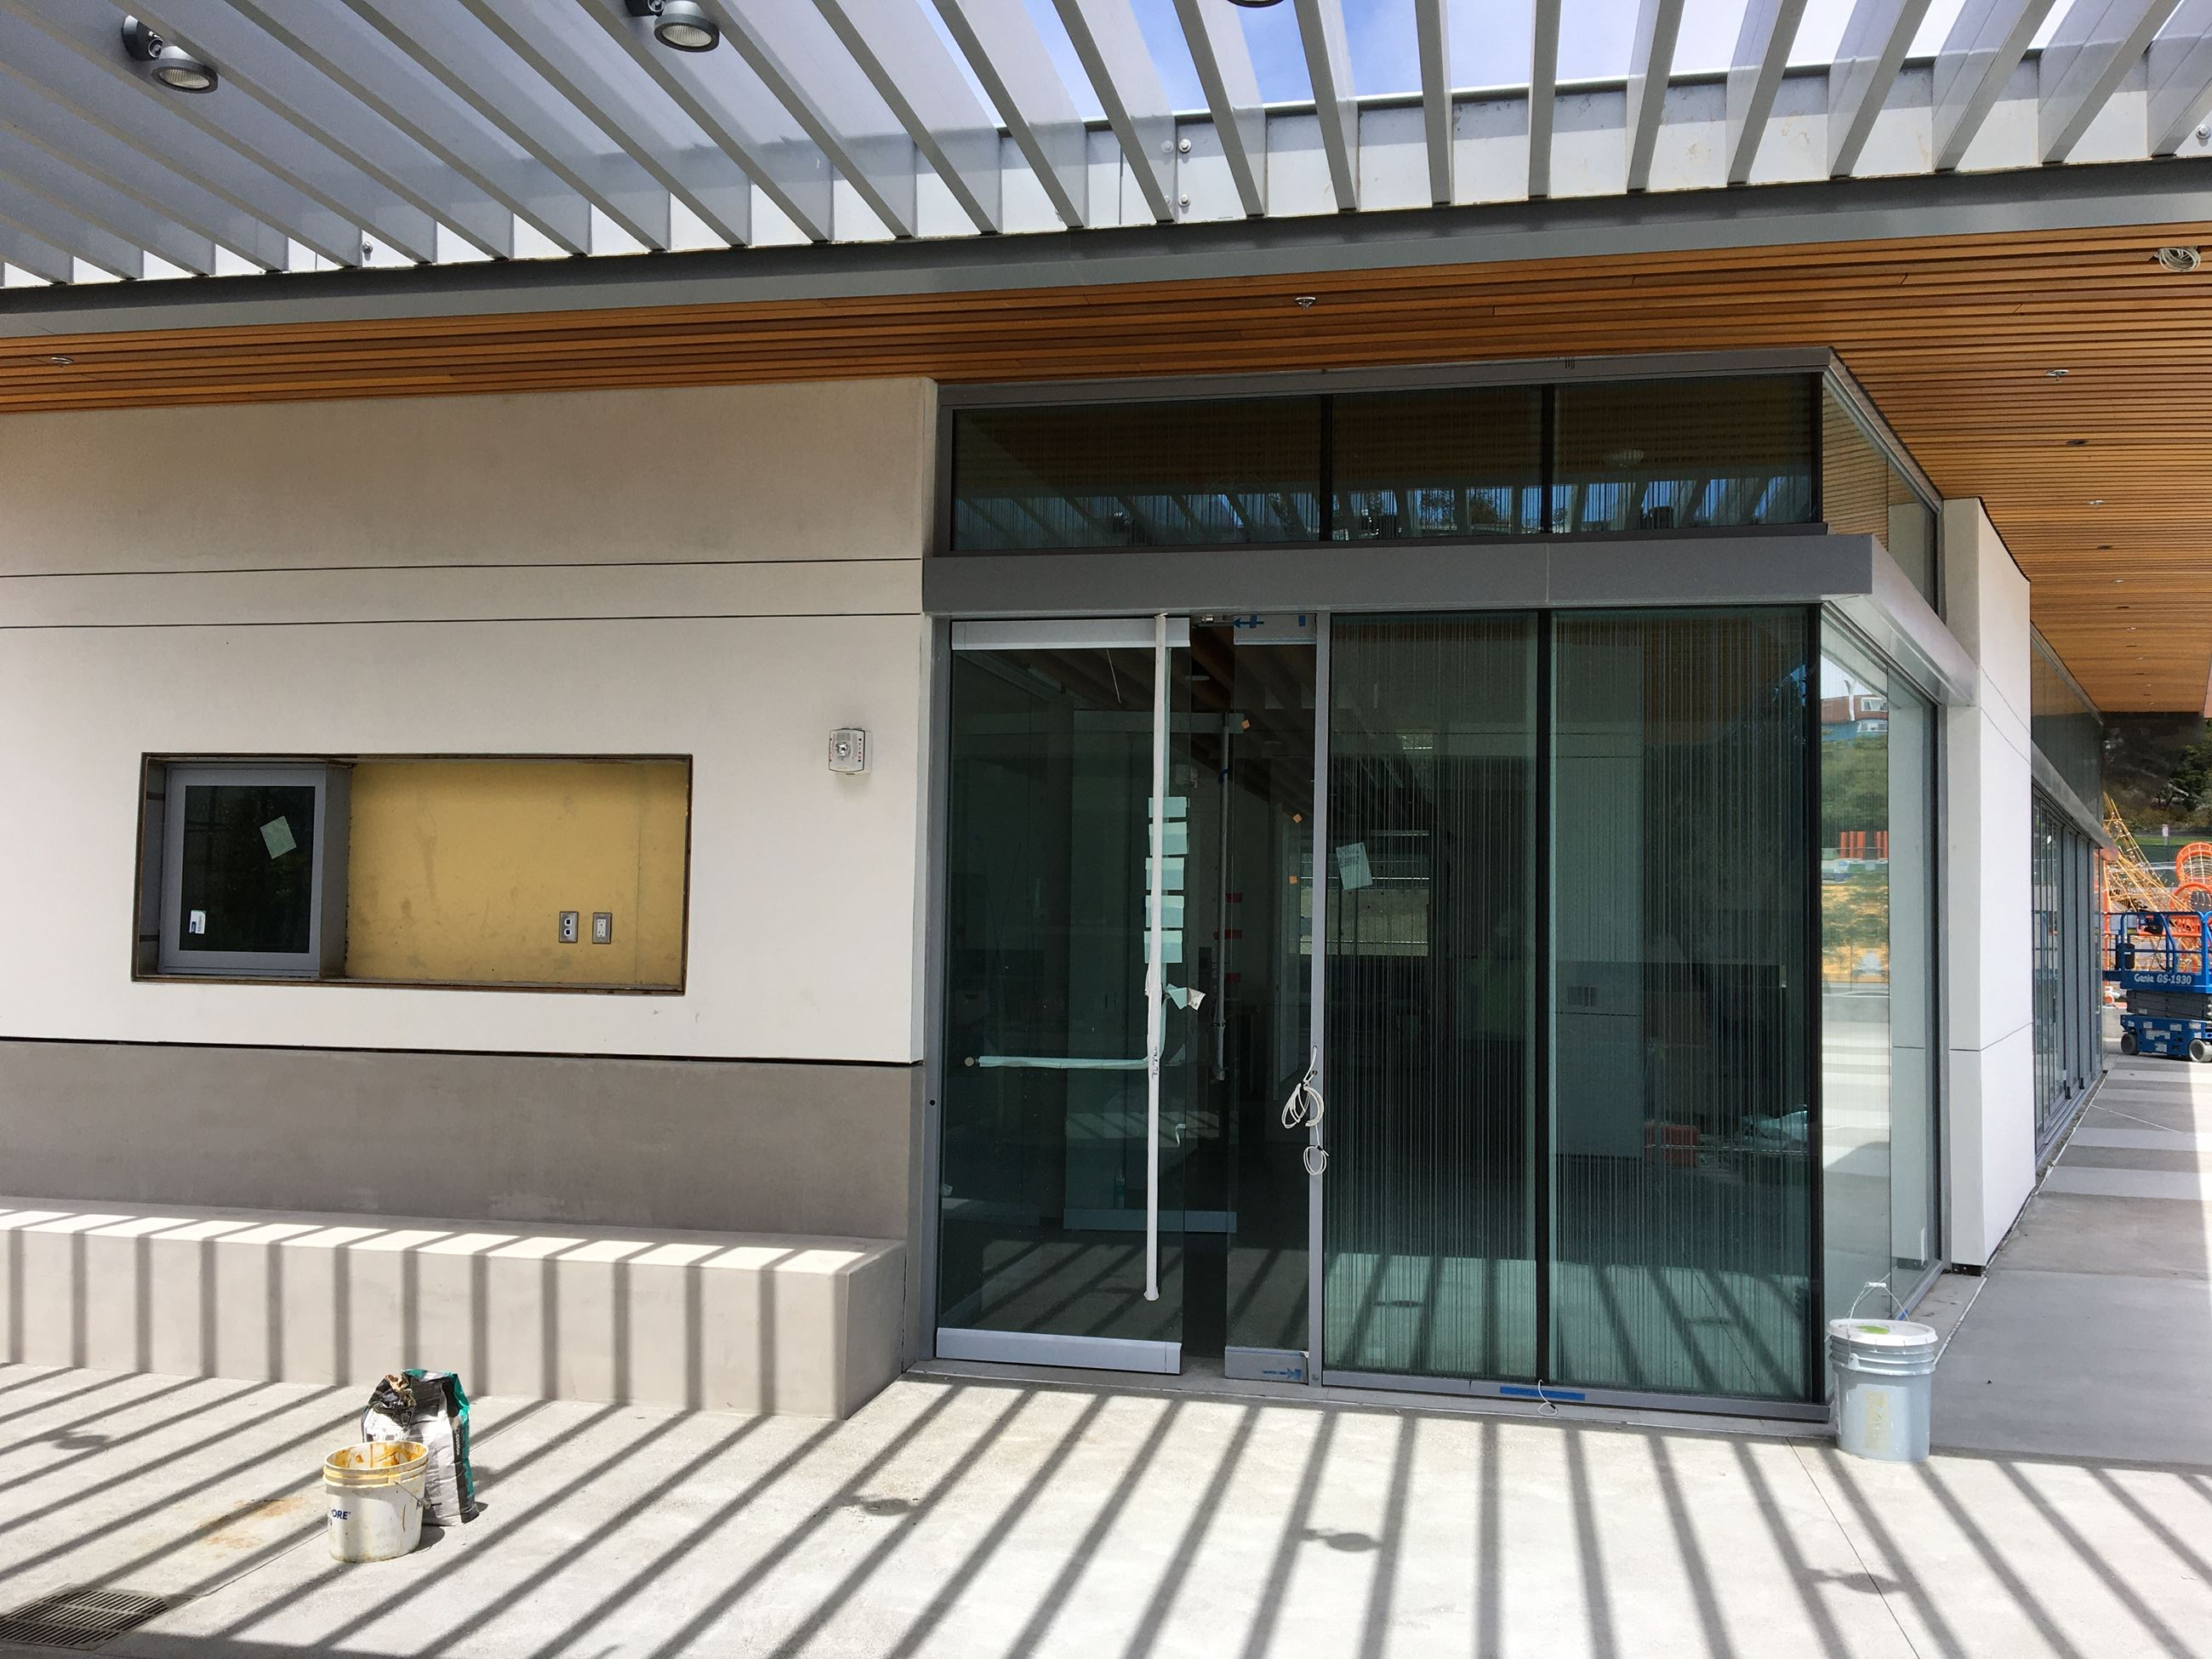 Photo shows exterior of the new clubhouse with glass door and windows, bench seat and slated awning.